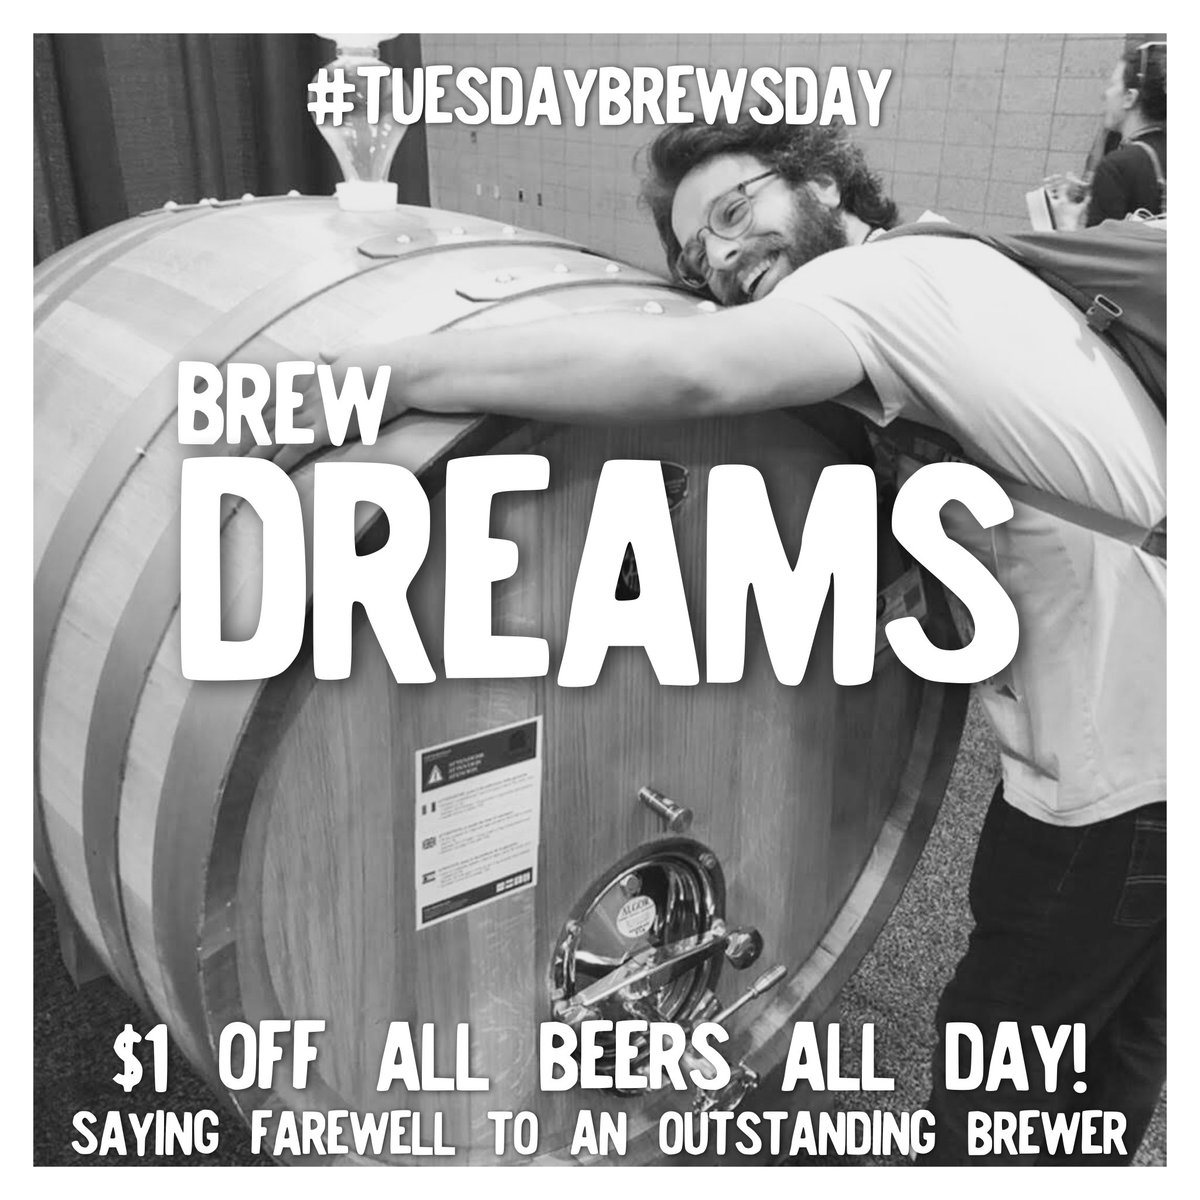 It's a sad day here at Pitt Street. Our head brewer Nate is moving on to accomplish his dreams. We are celebrating him today with $1 off all beers and a #tuesdaybrewsday release! The Royster Stout brewed with farm raised oysters, Tabasco, lemon juice and cayenne pepper!